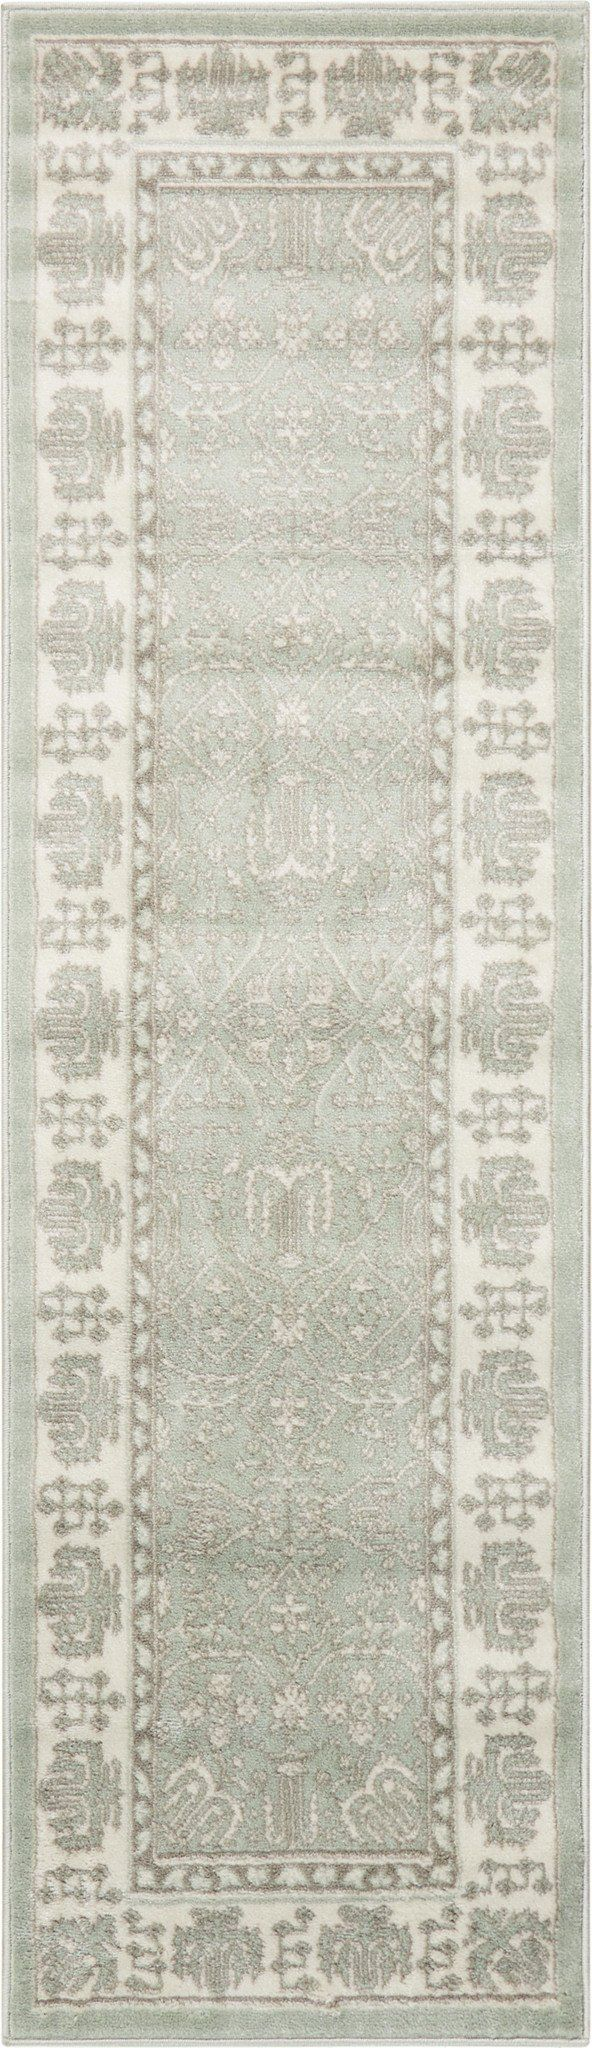 "Euphoria Spa Area Rug 2'2"" x 7'6"""